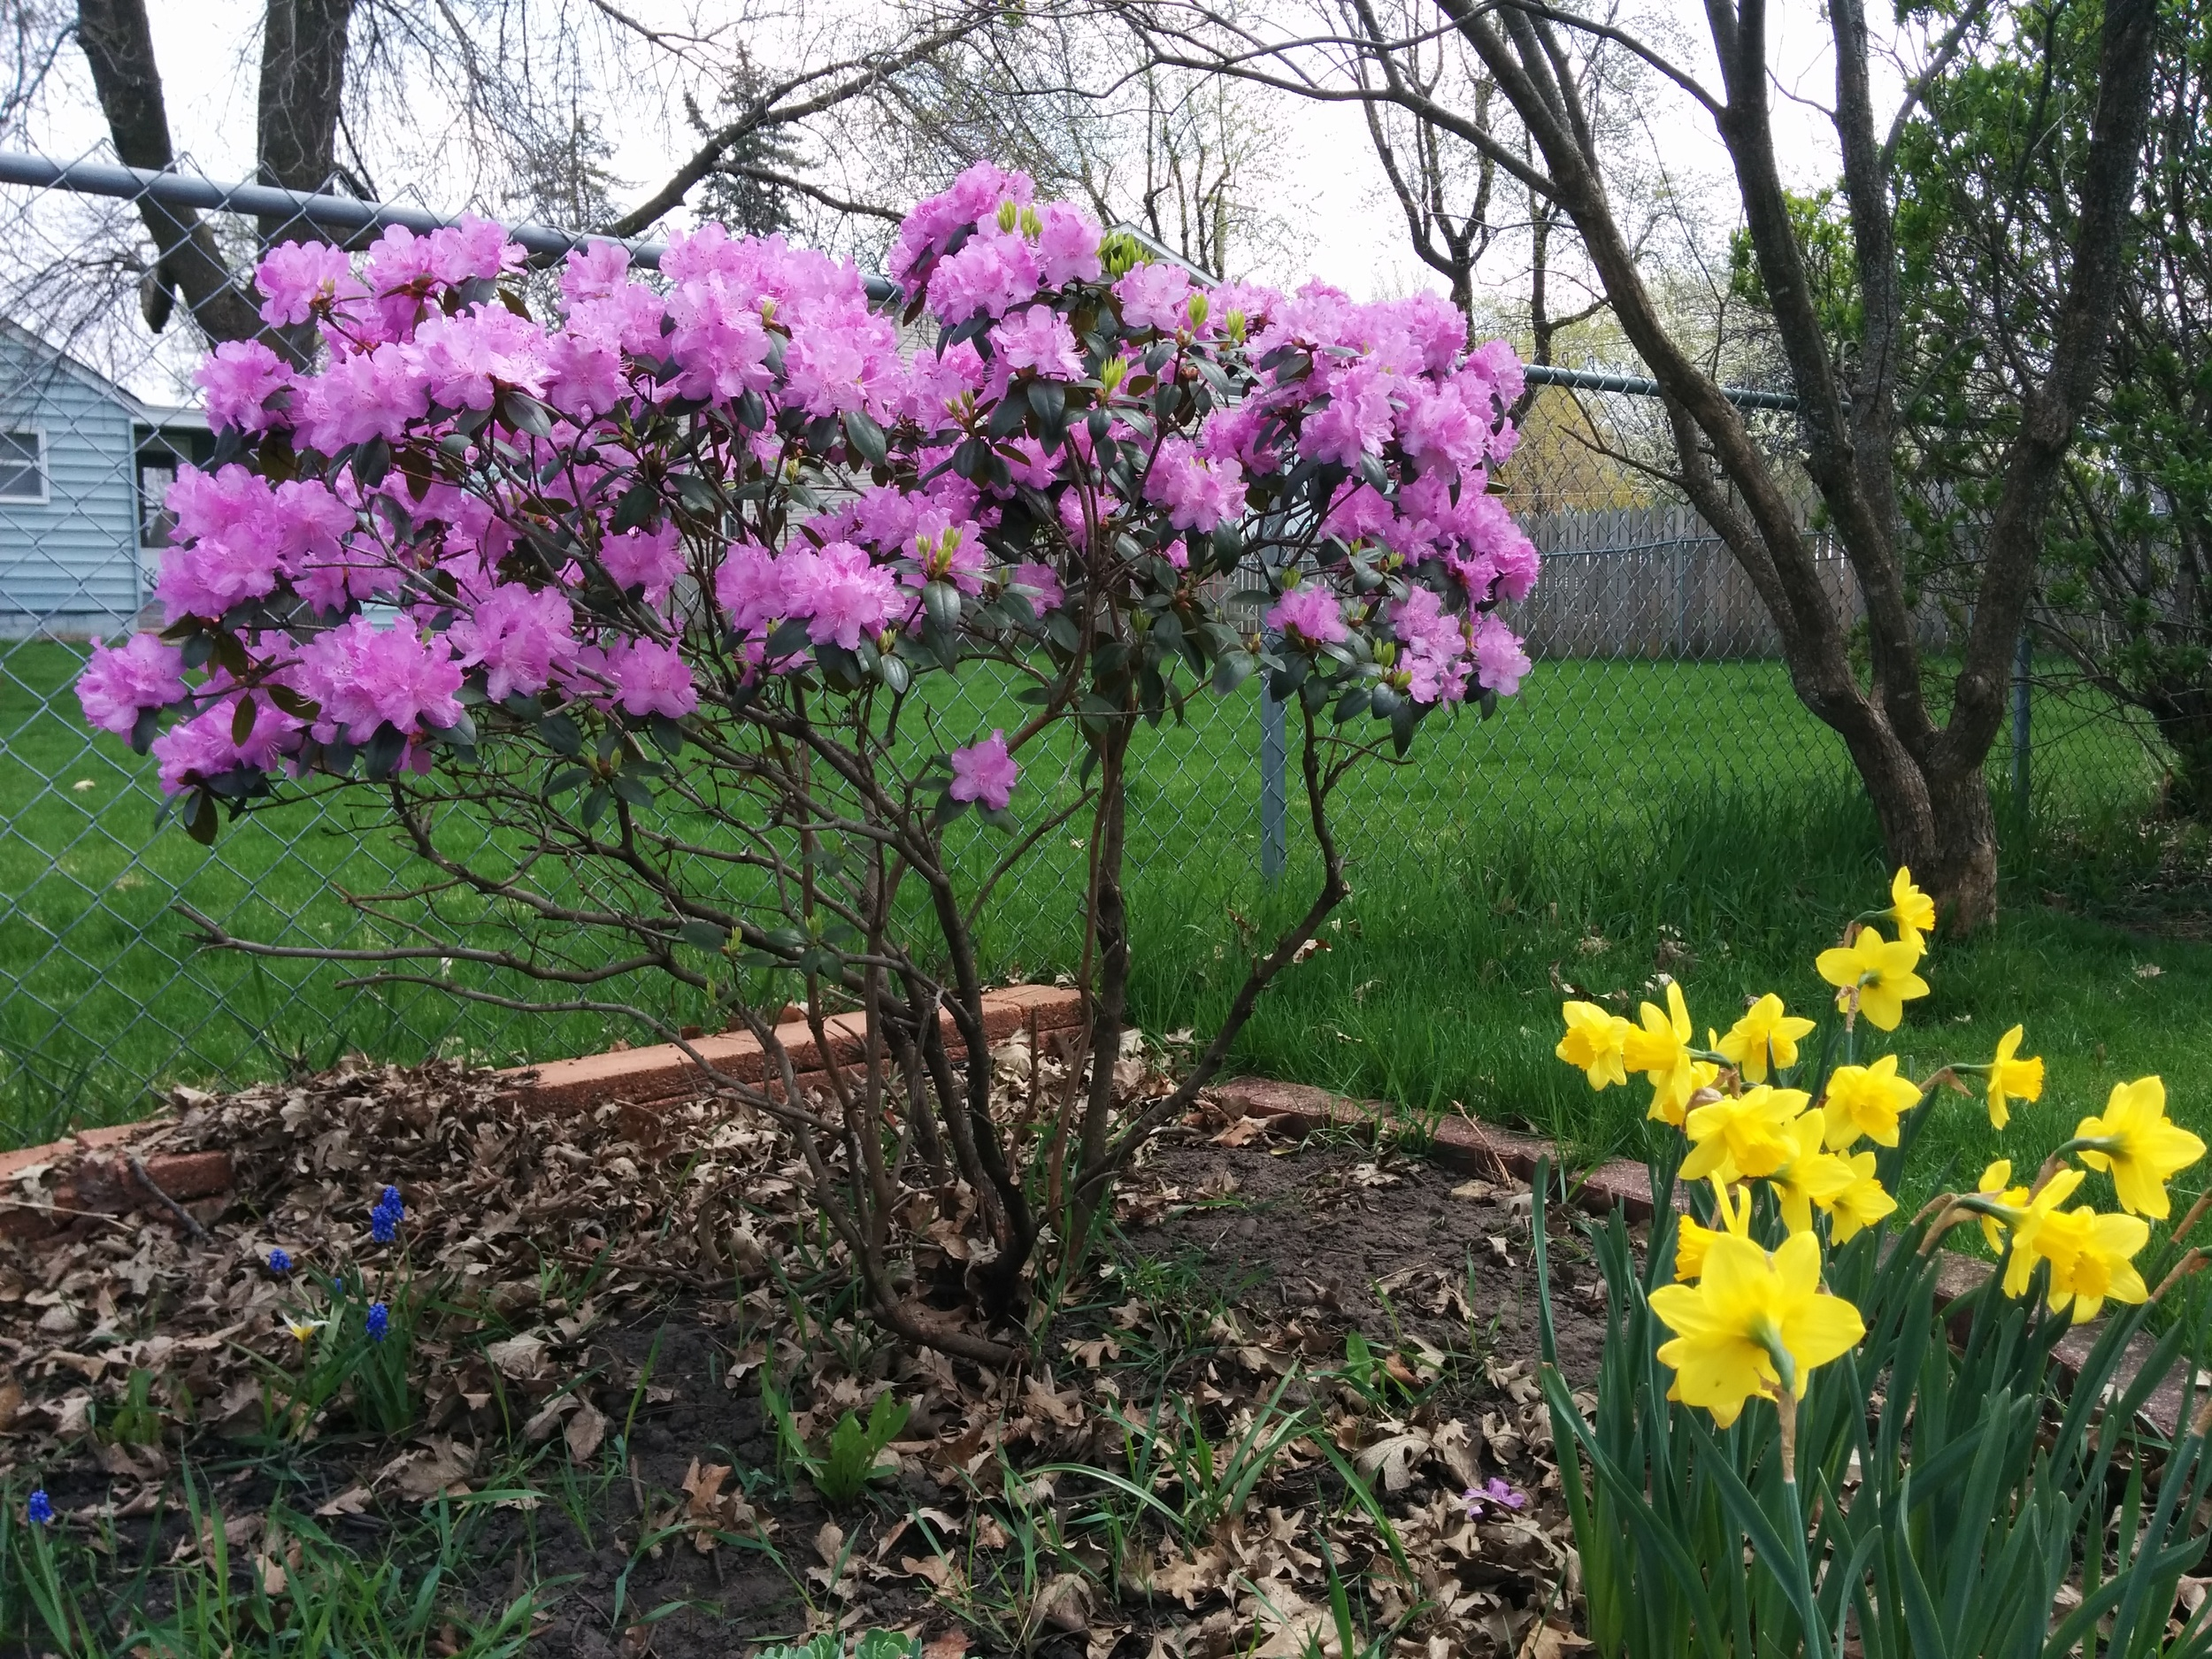 Rhododendron, daffodils, and the tiny grape hyacinths